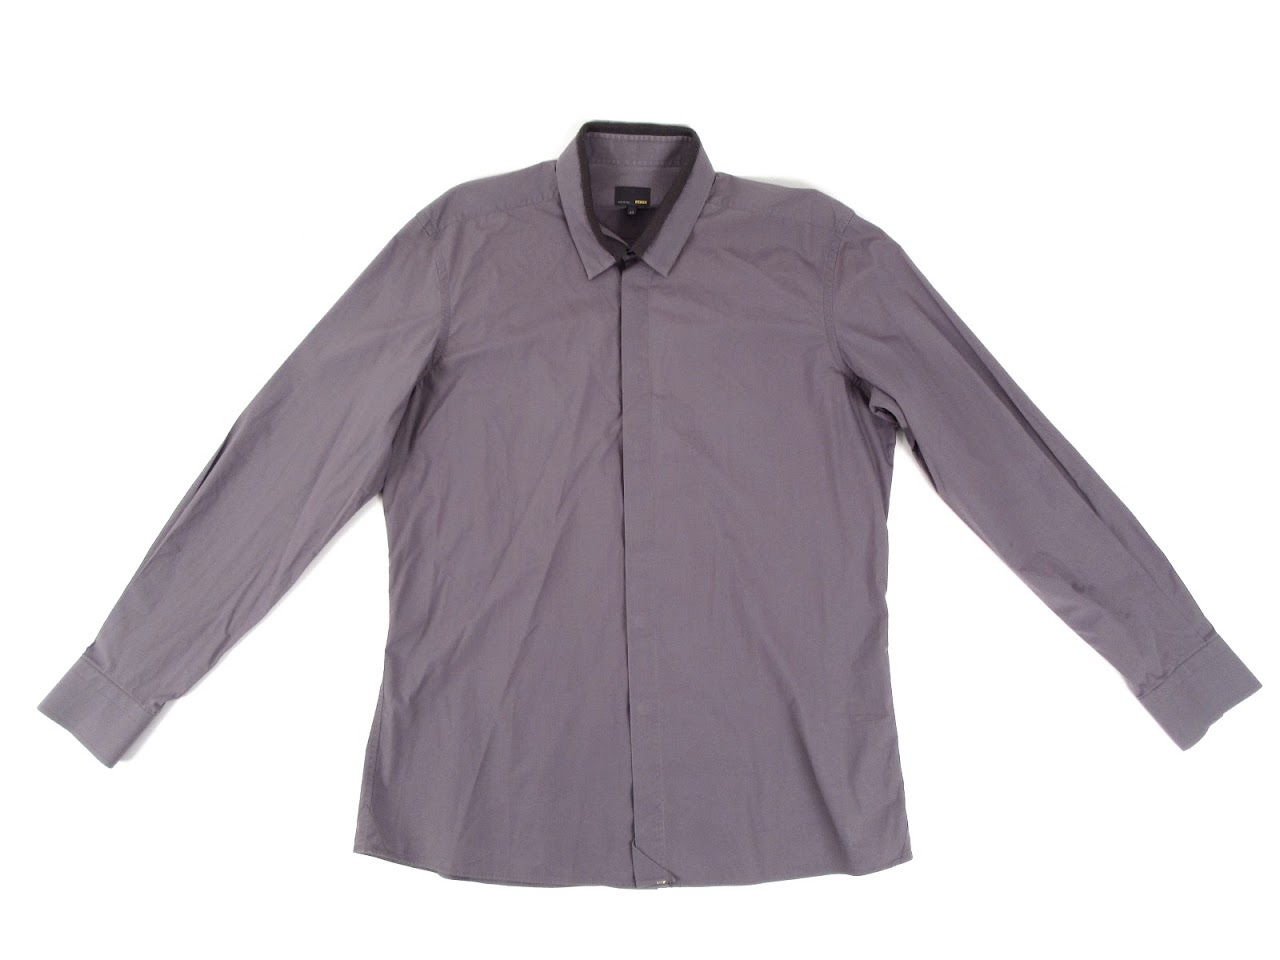 Fendi Ombre Long Sleeve Dress Shirt